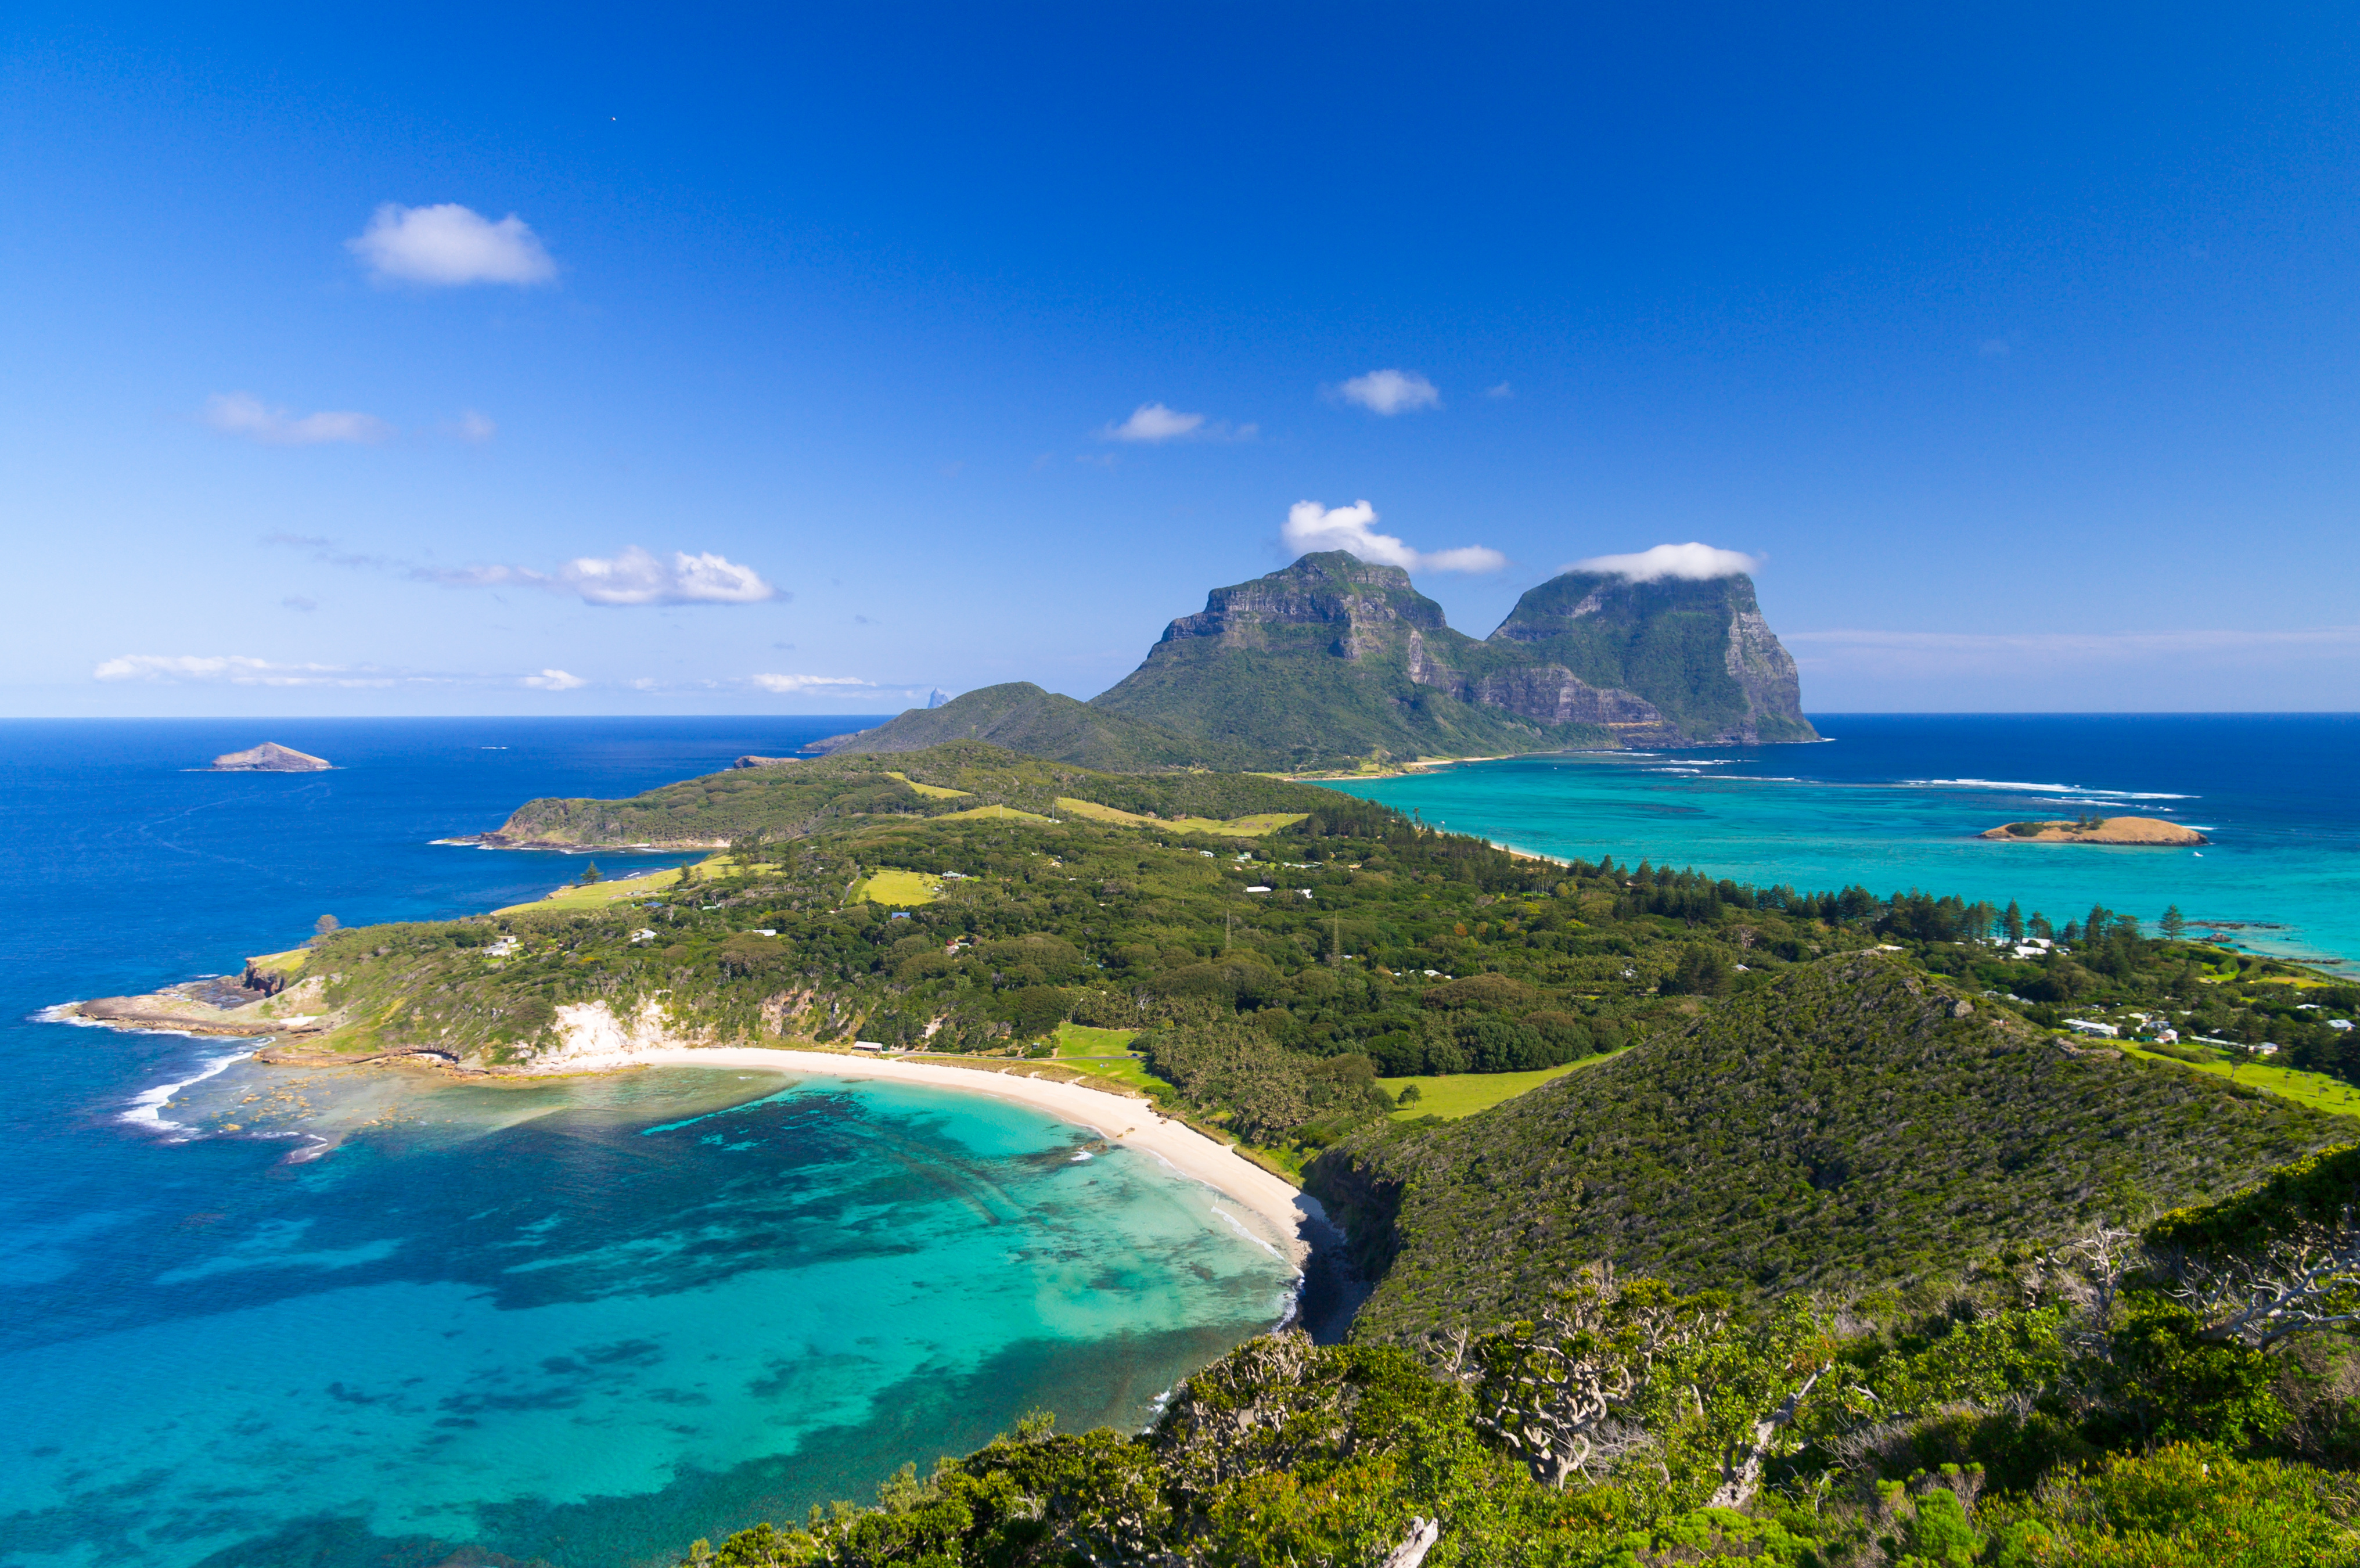 L'île Lord Howe